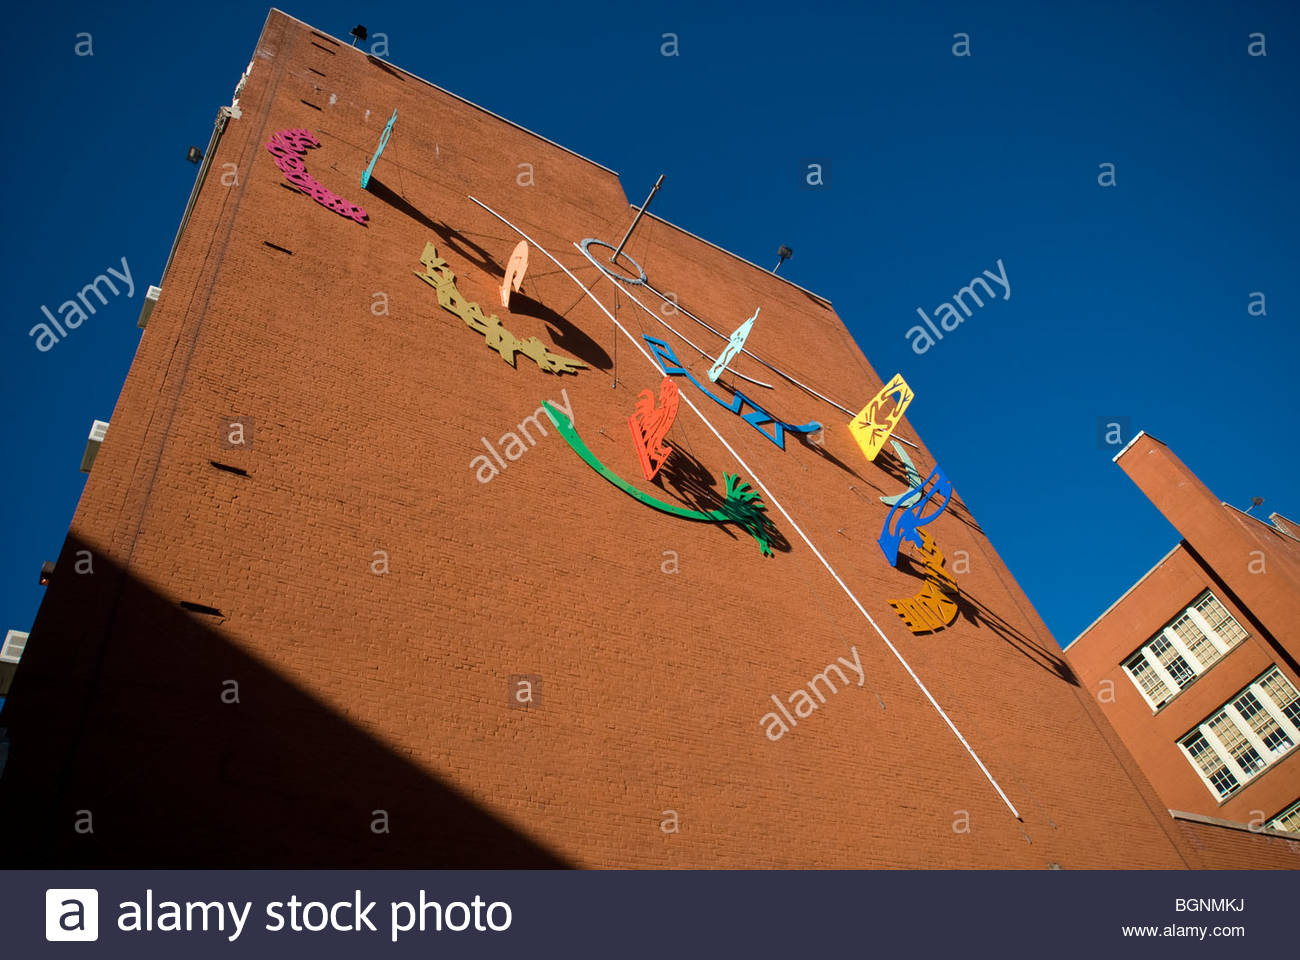 The Helio–Chronometer Sculpture is seen on the exterior wall of a public school in the New York neighborhood of - Stock Image